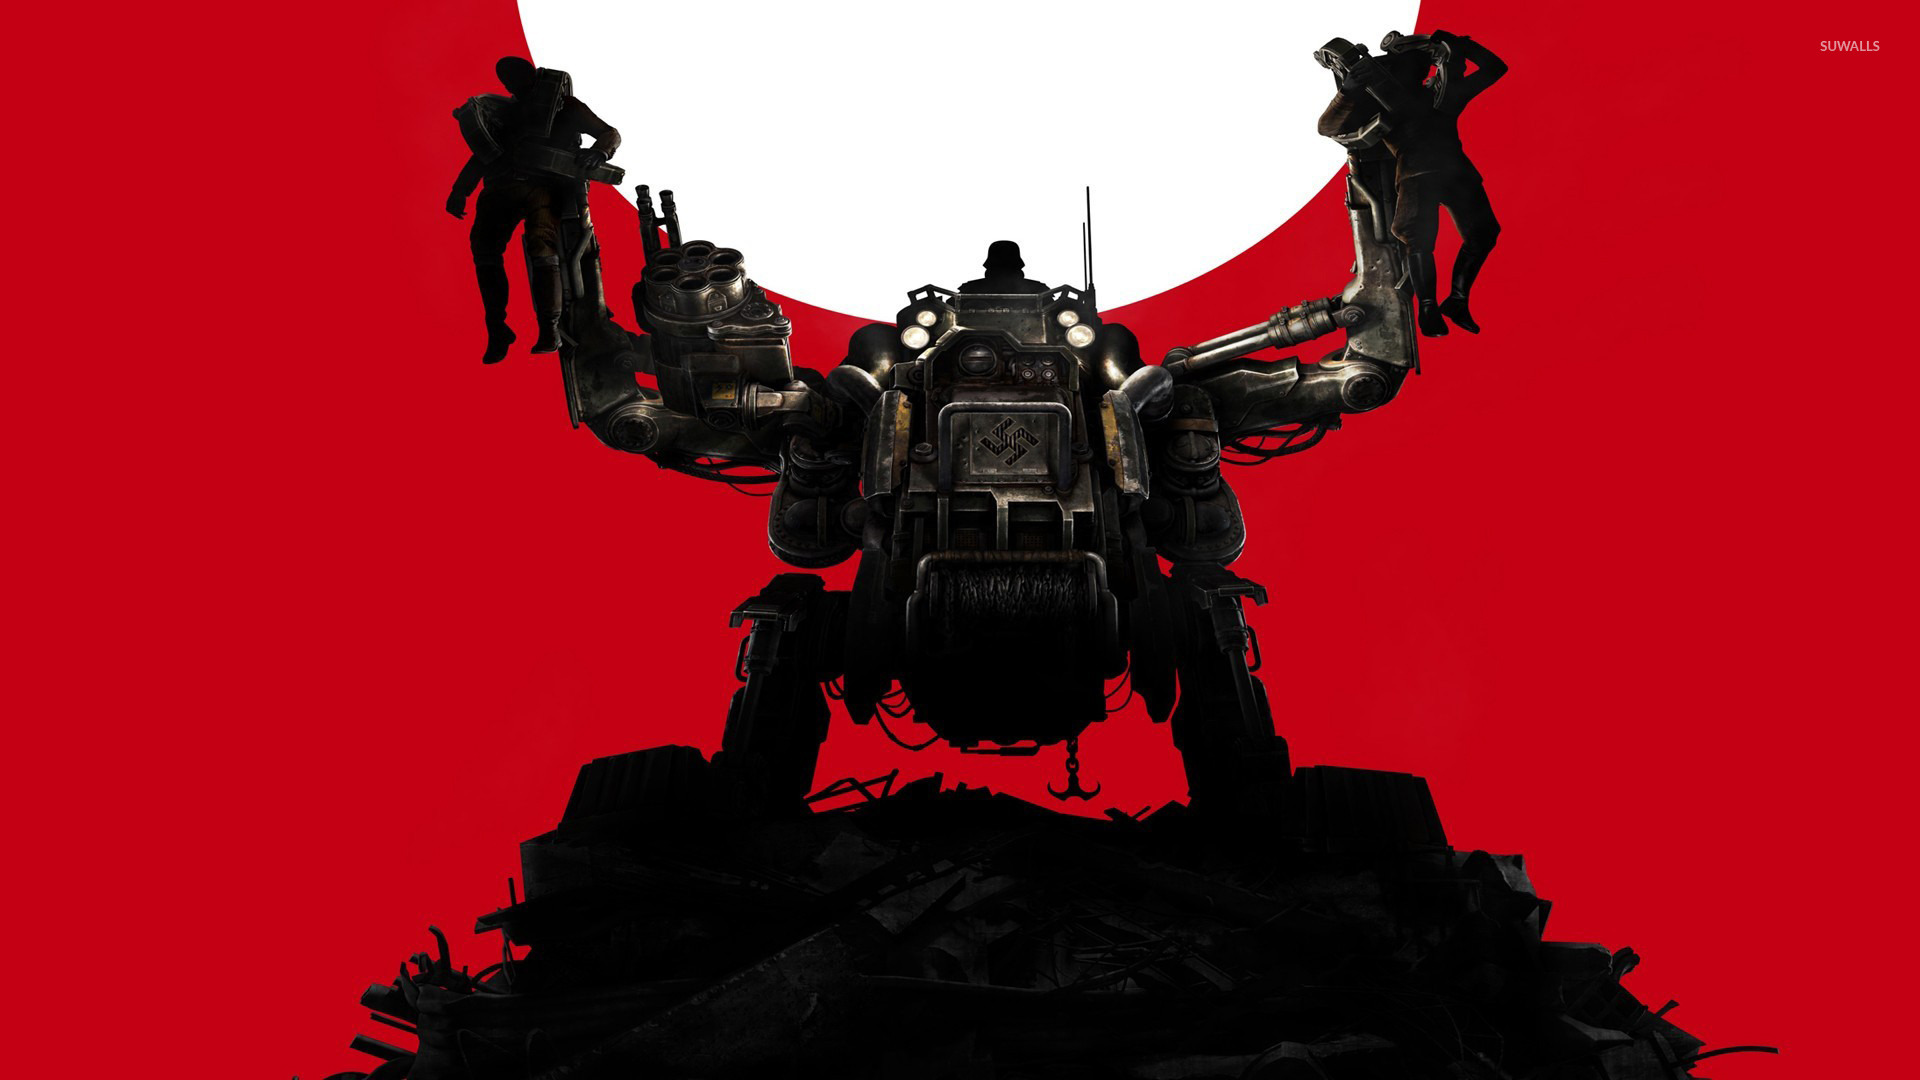 wolfenstein the new order 5 wallpaper game wallpapers